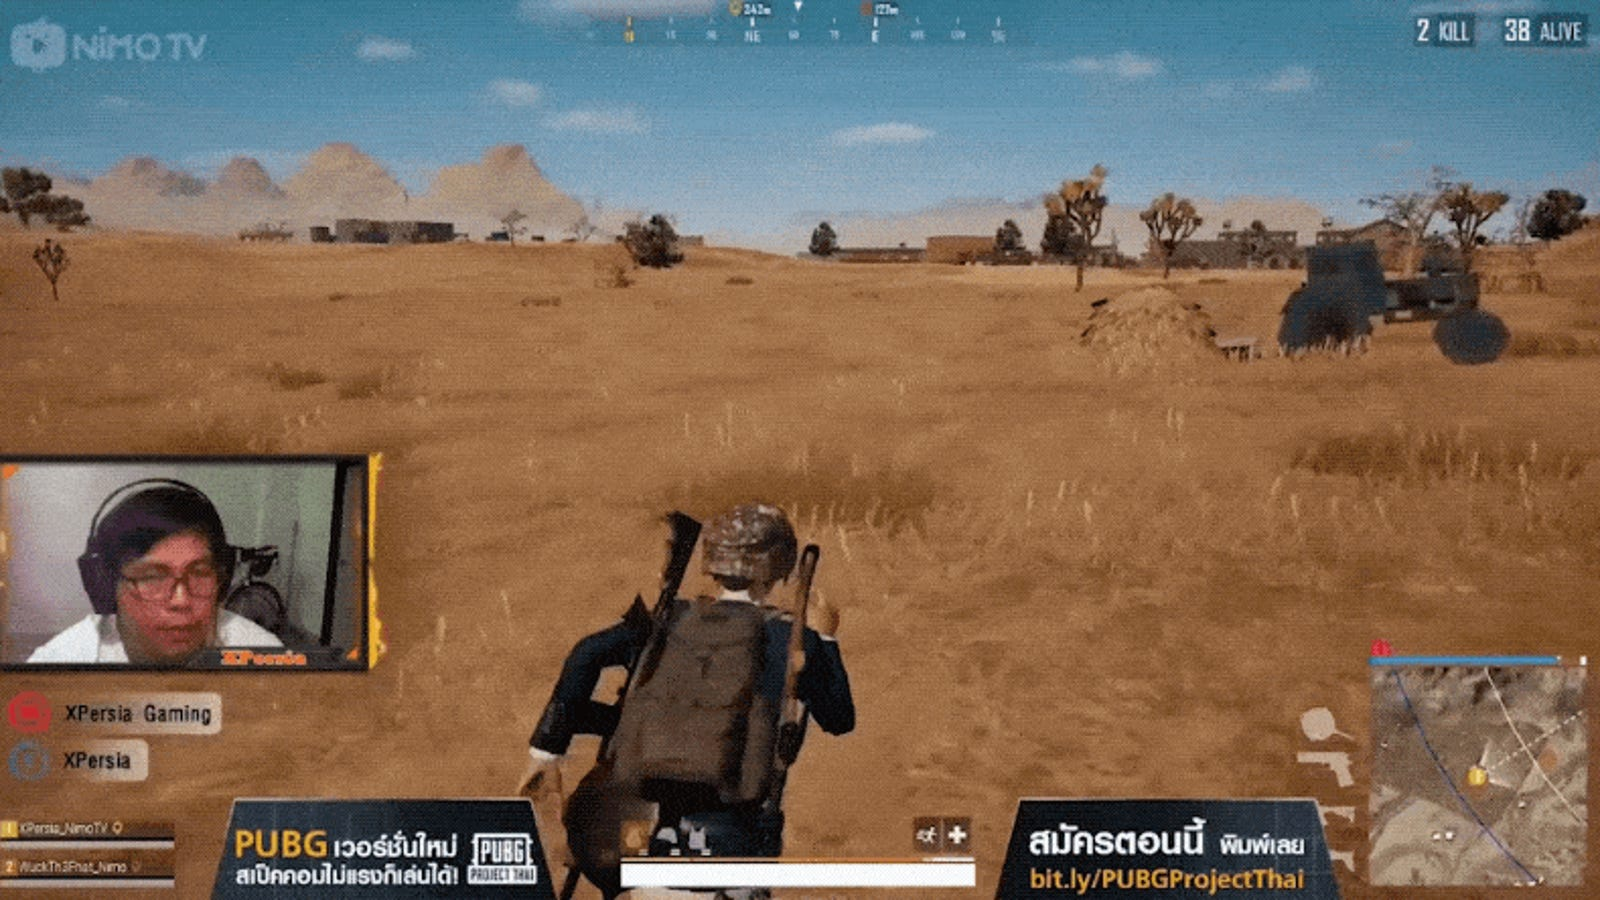 A Low Spec Version Of Pc S Pubg To Start: Low-Spec Version Of PUBG Released In Thailand